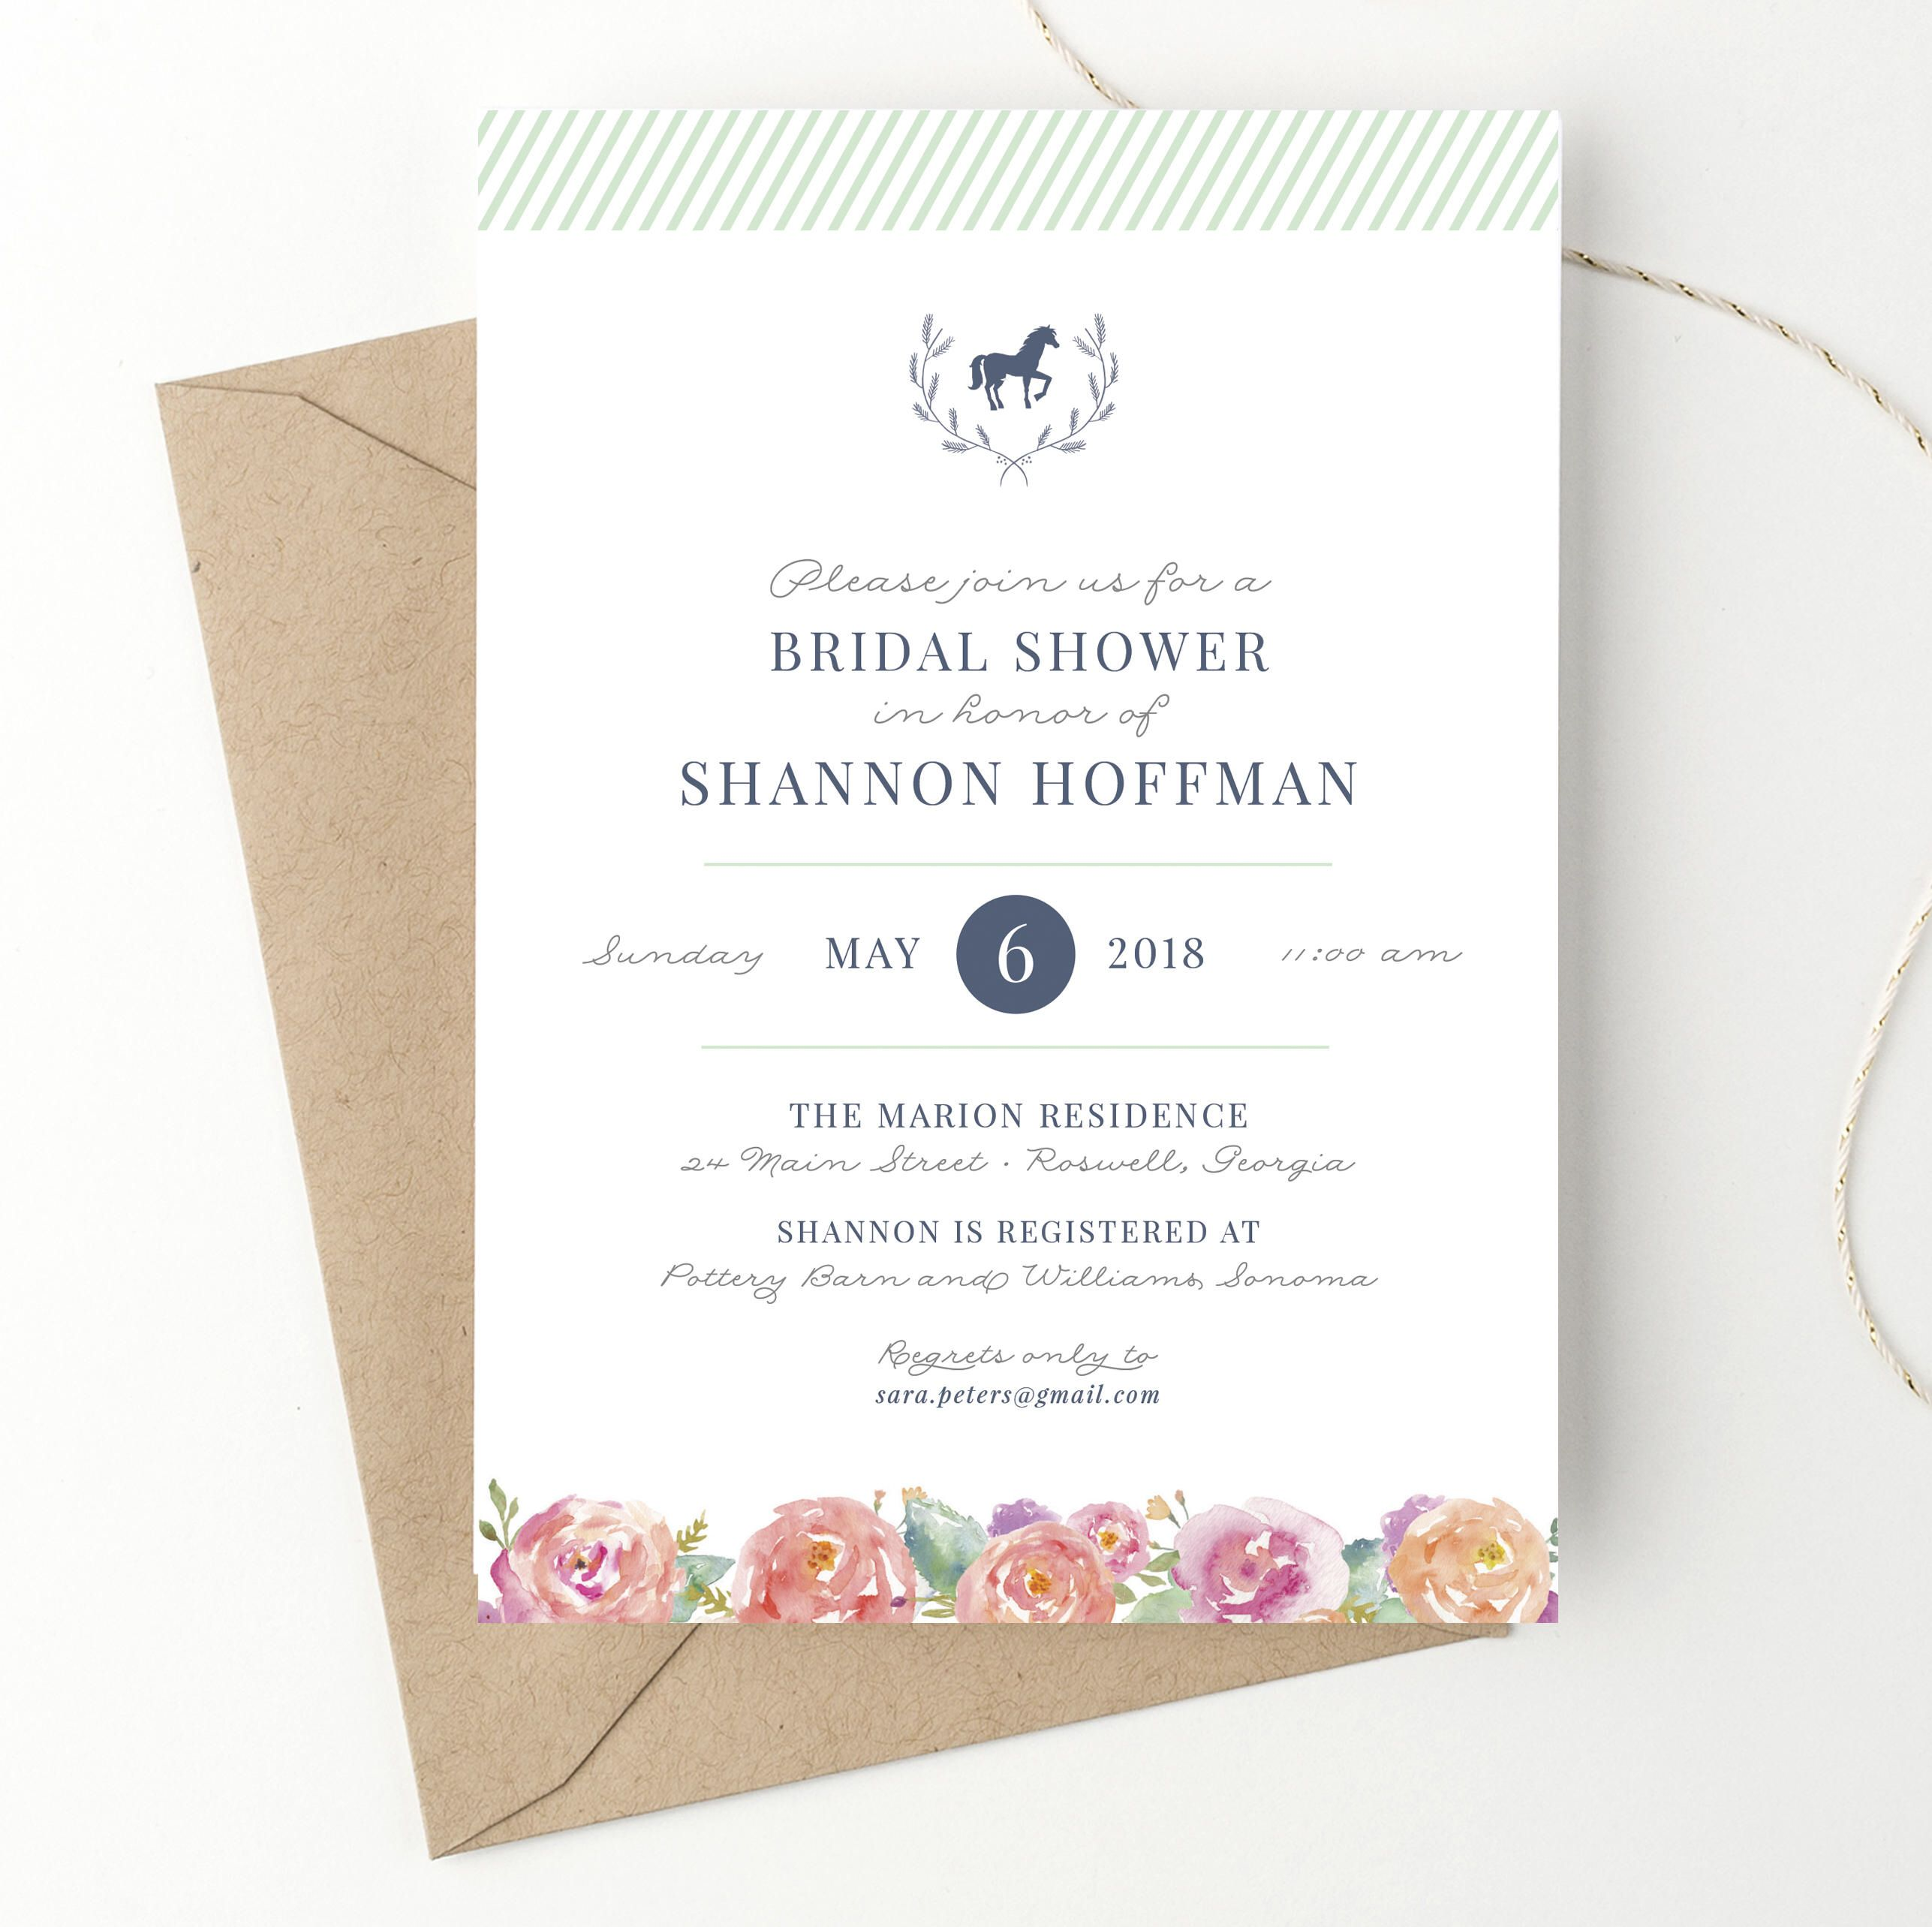 Kentucky Derby Bridal Shower Invitations, Horse Race or Equestrian ...